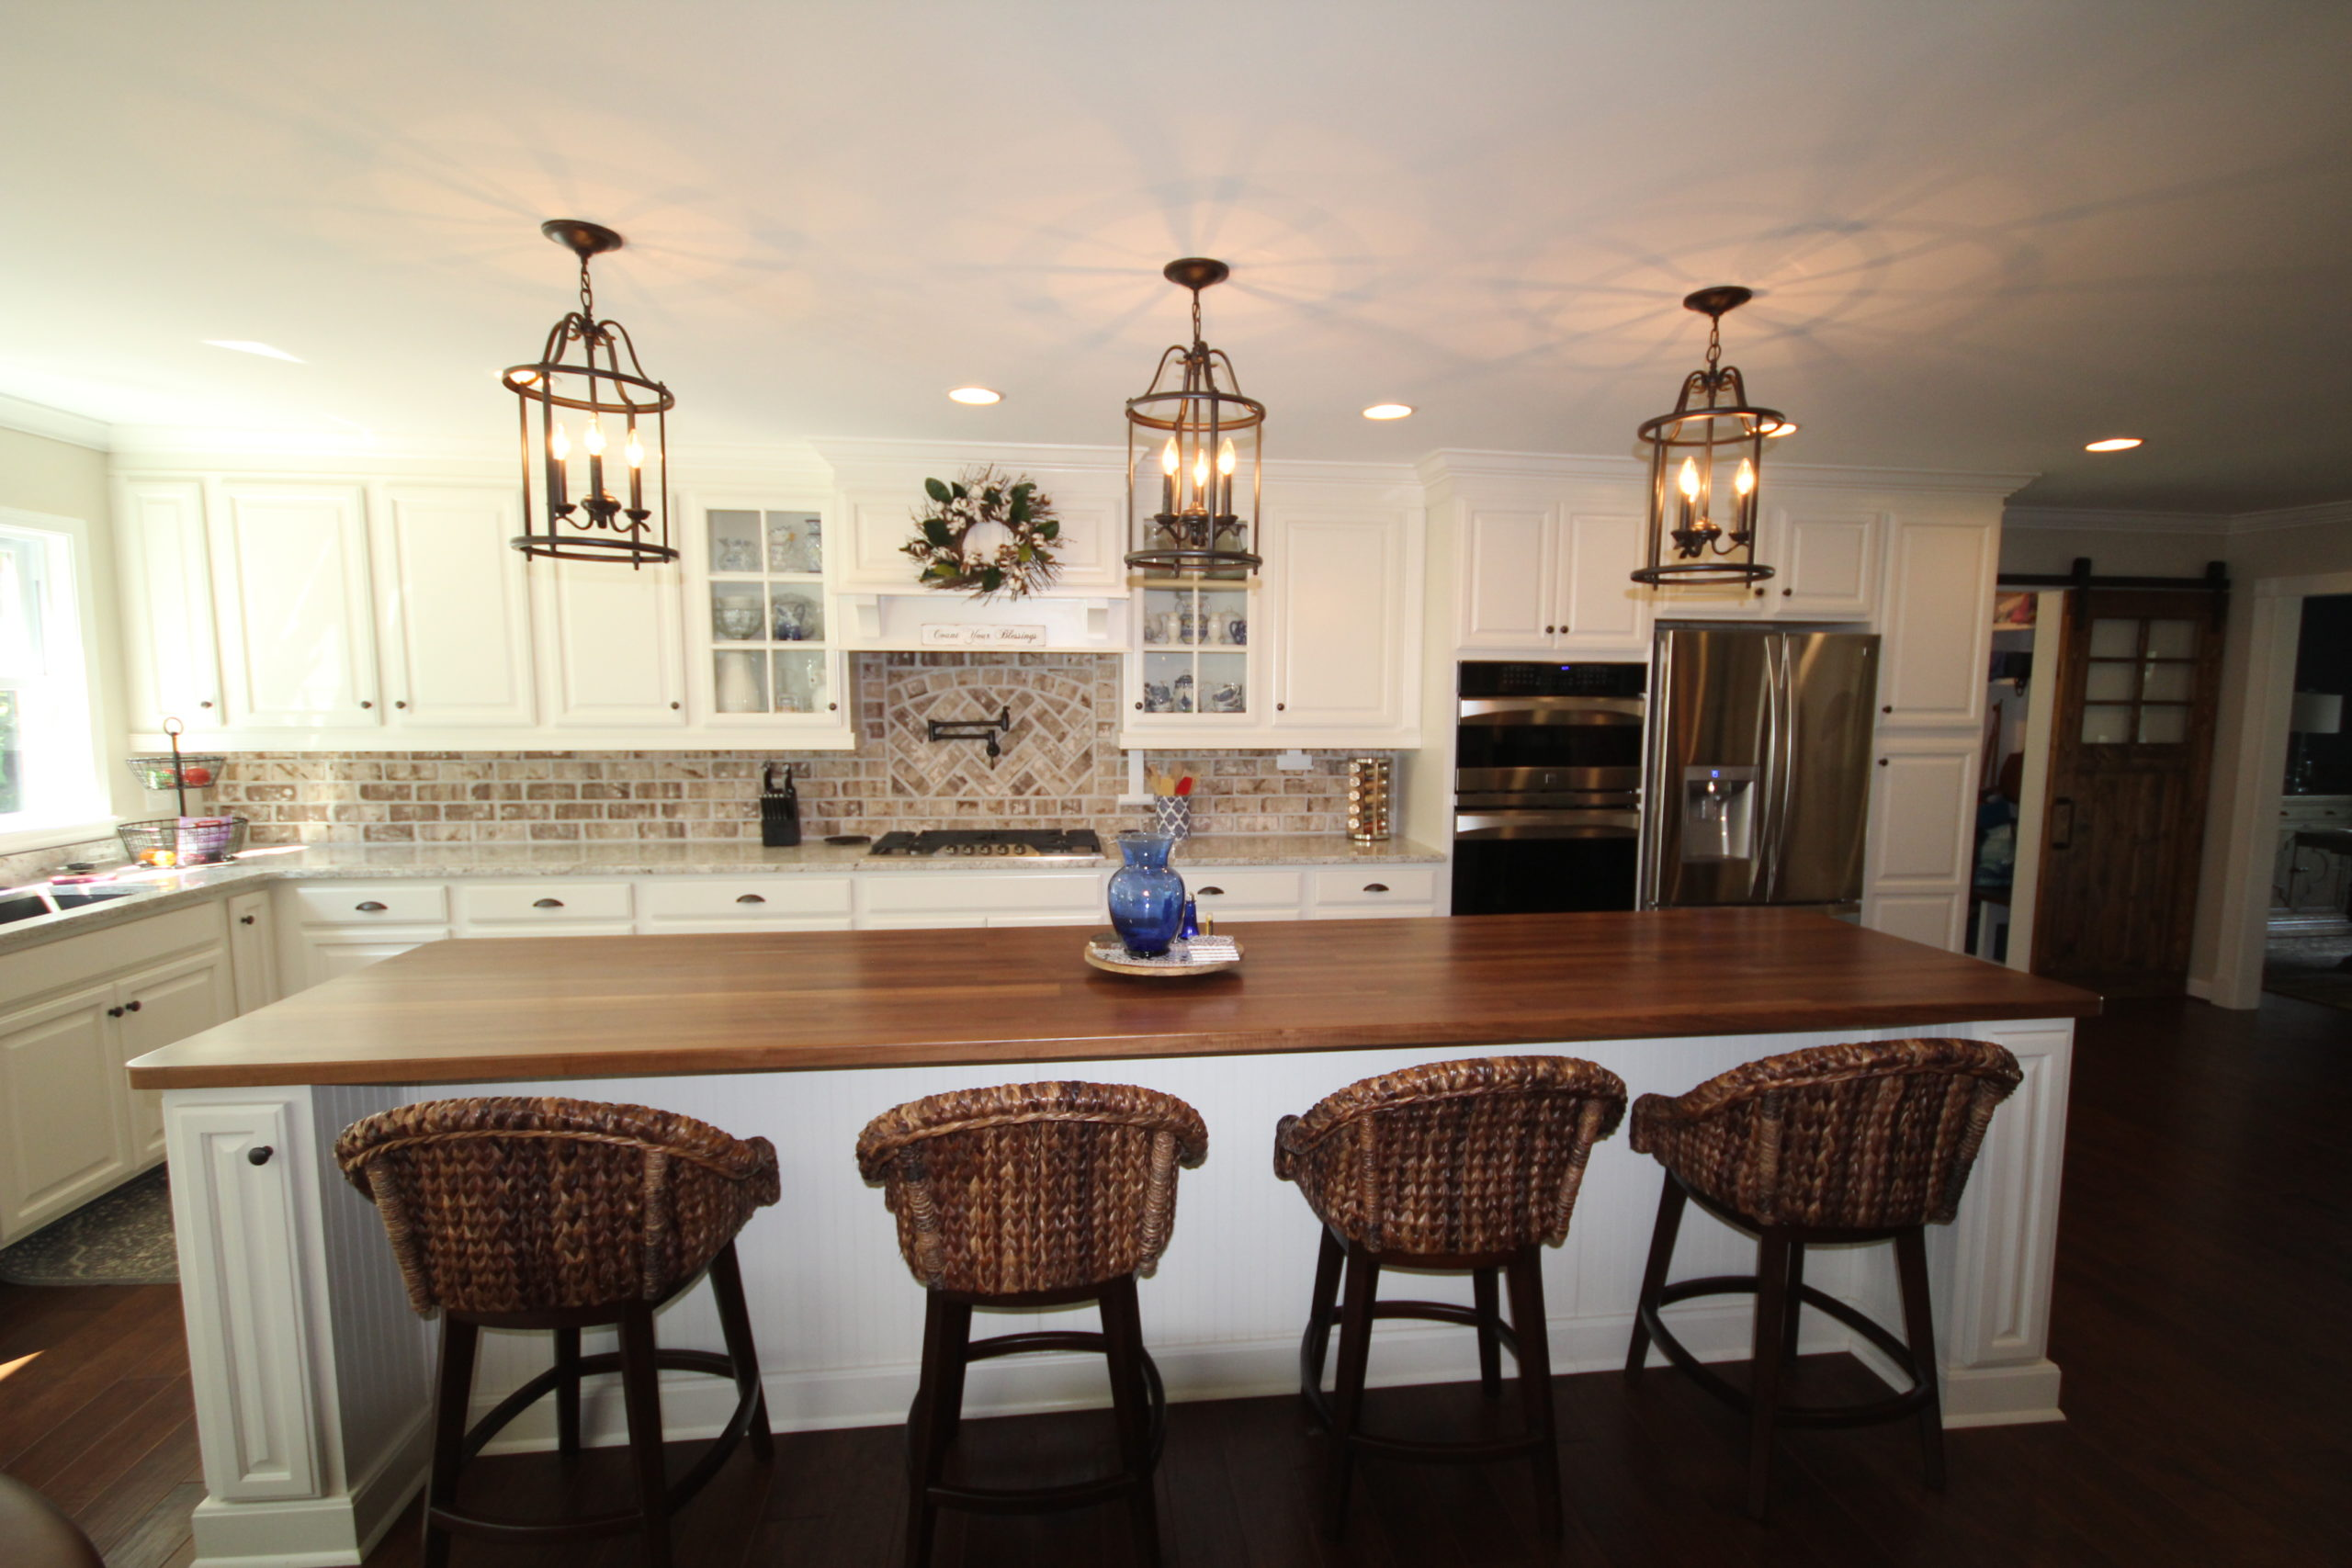 kitchen-remodeling-work-TAG-Builder-104-WW-Kitchen-Remodel-2-scaled